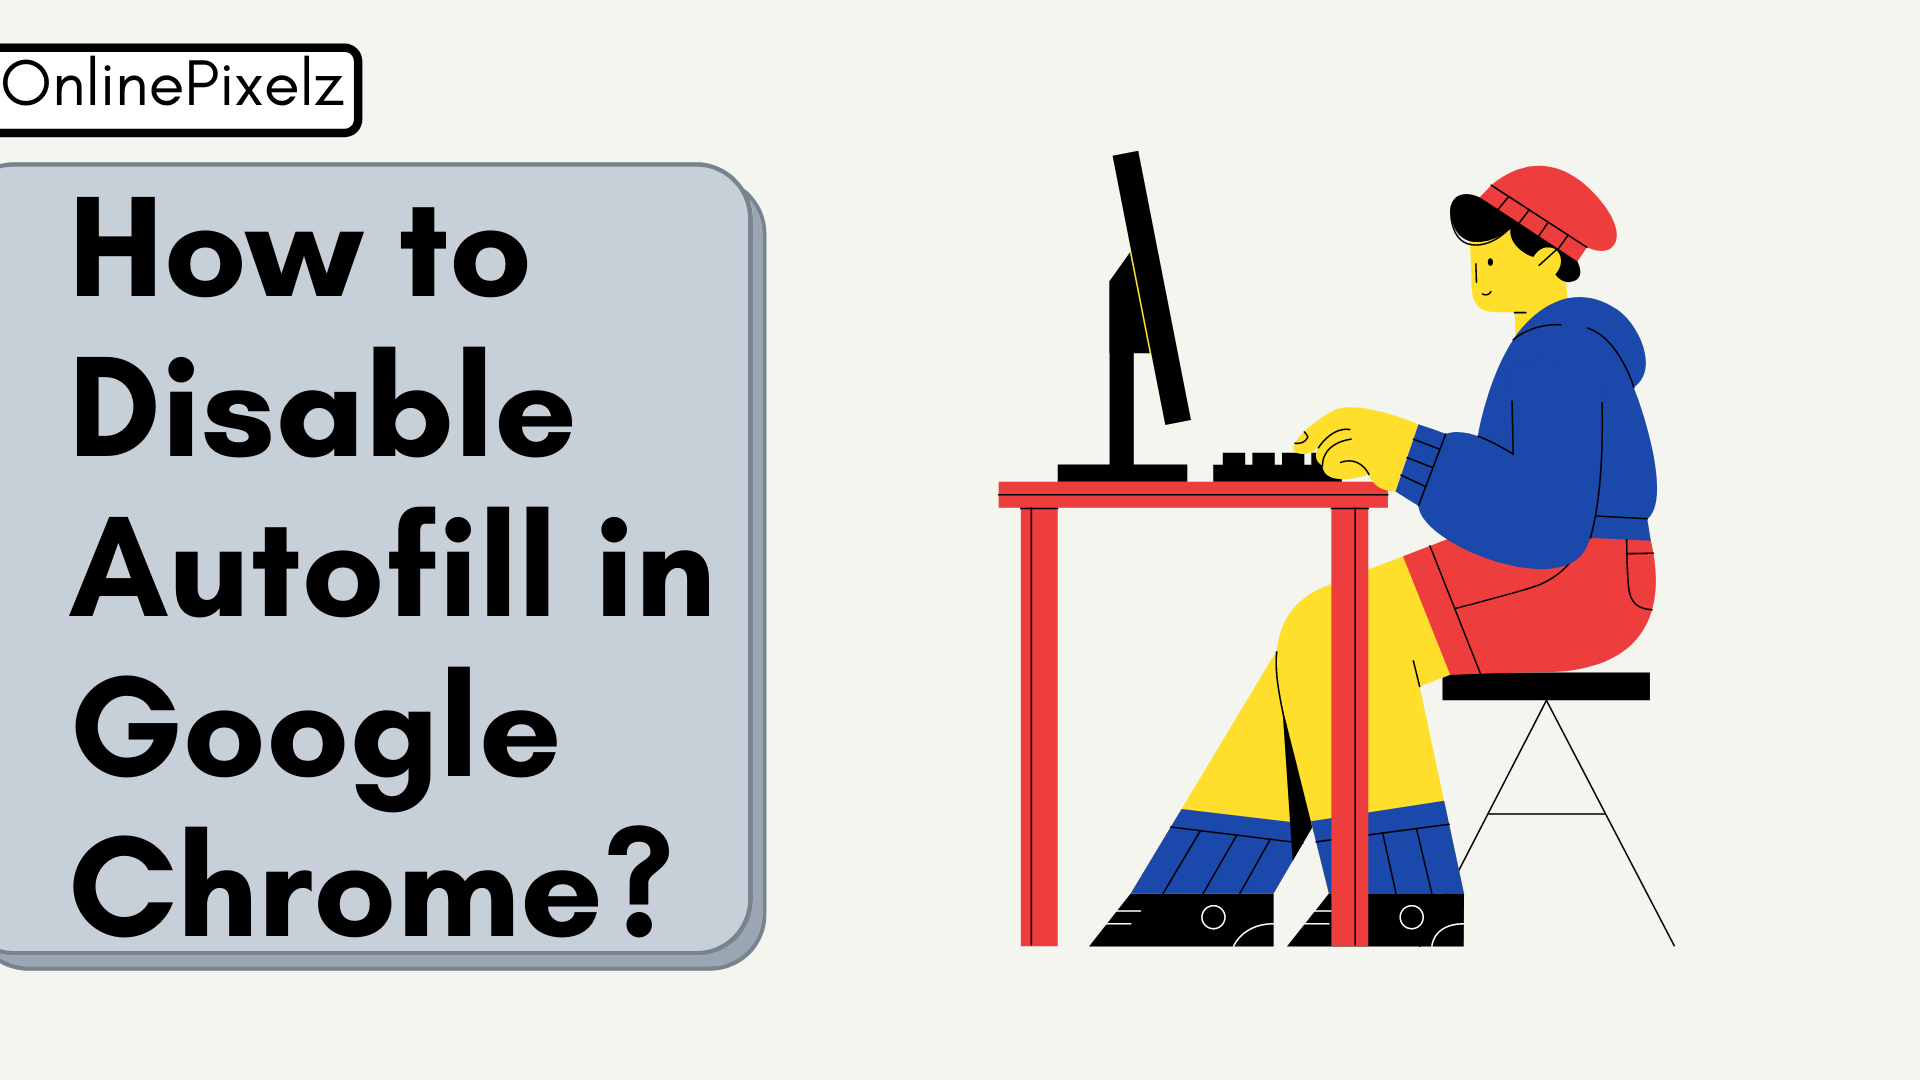 How to Disable Autofill in Google Chrome